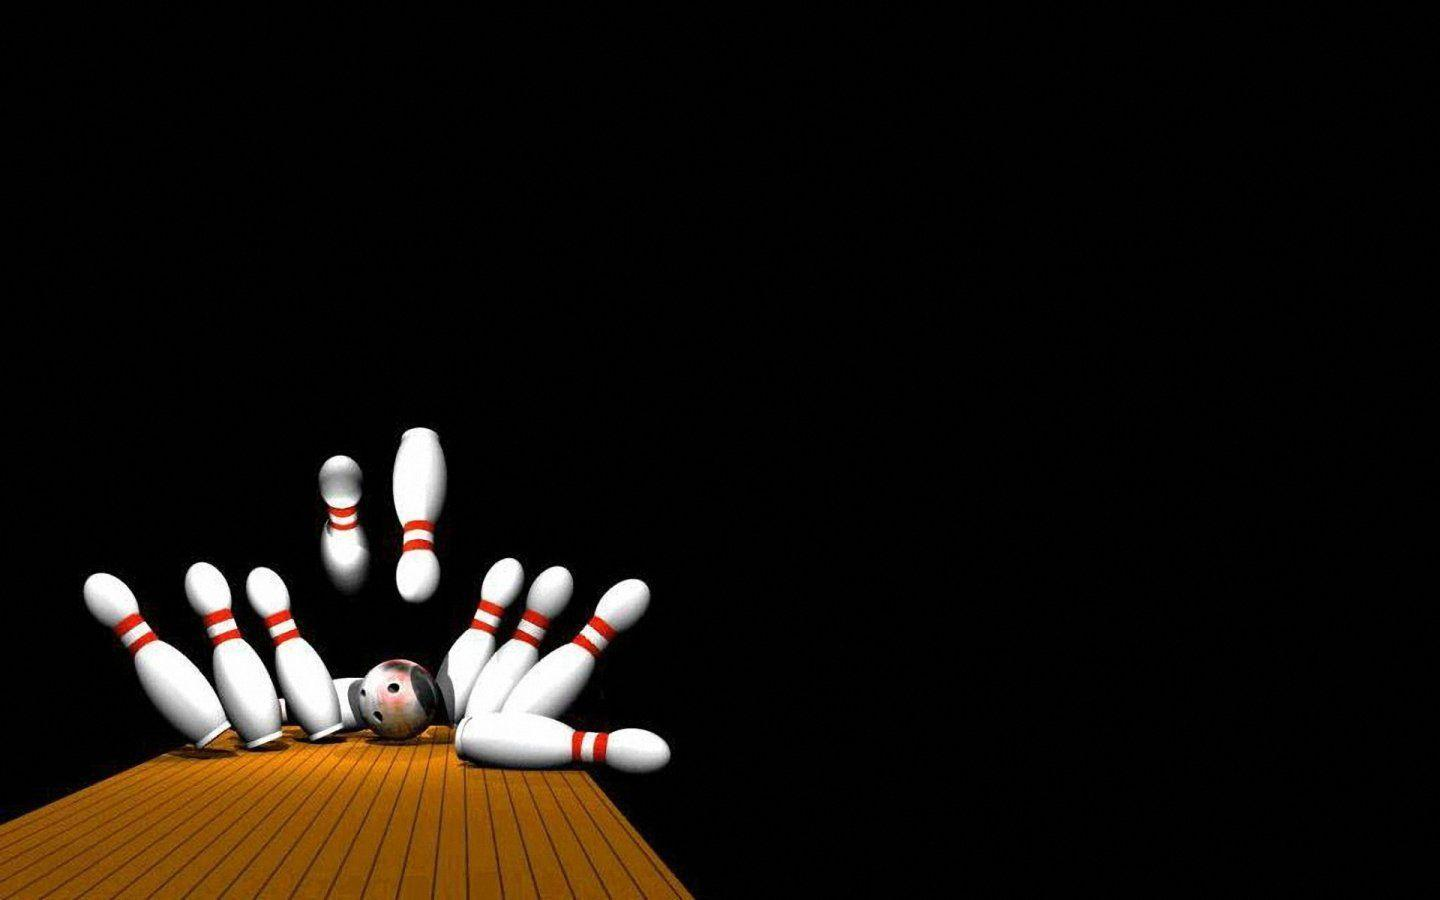 Pin On Sports Wallpaper: Bowling Wallpapers